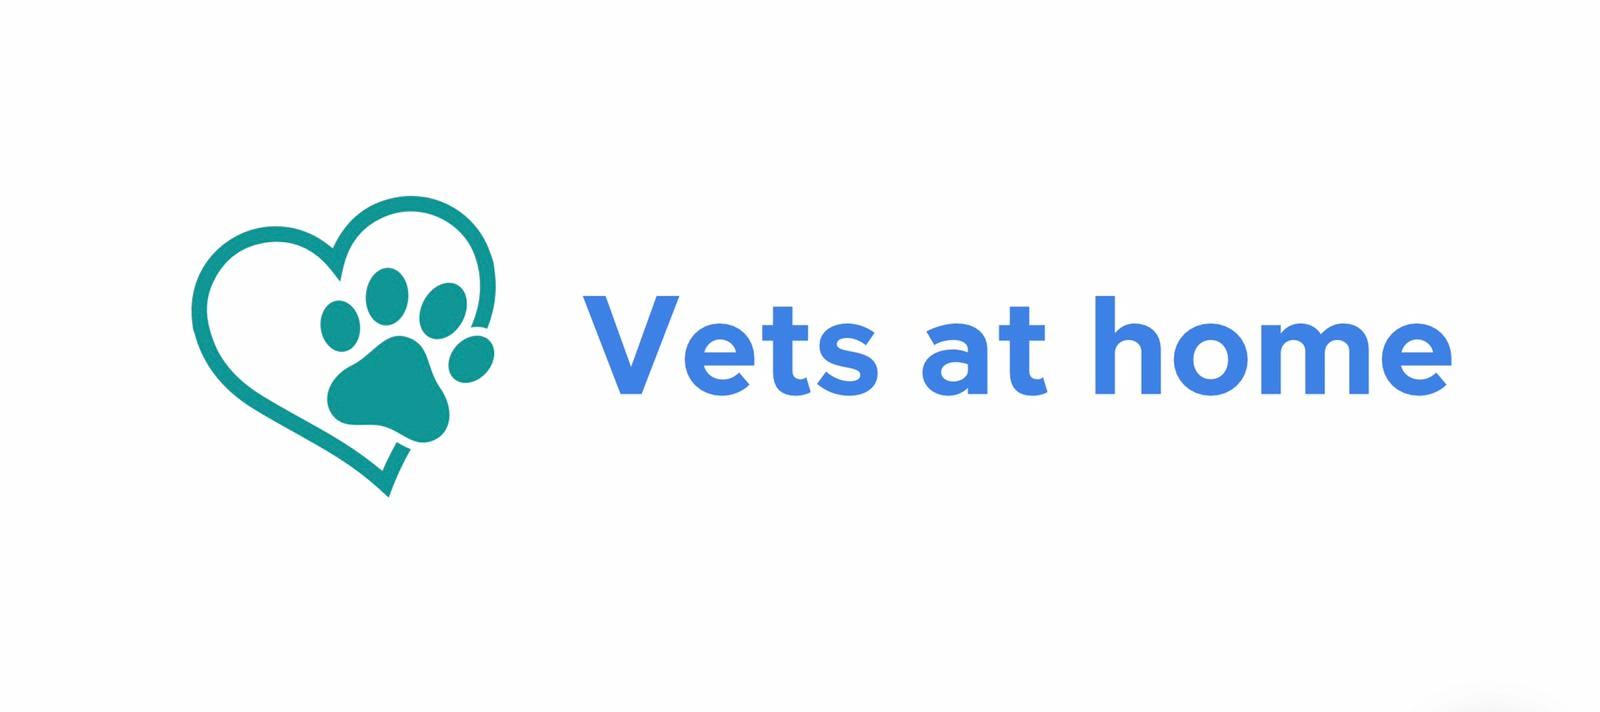 Vets at home - veterinarians